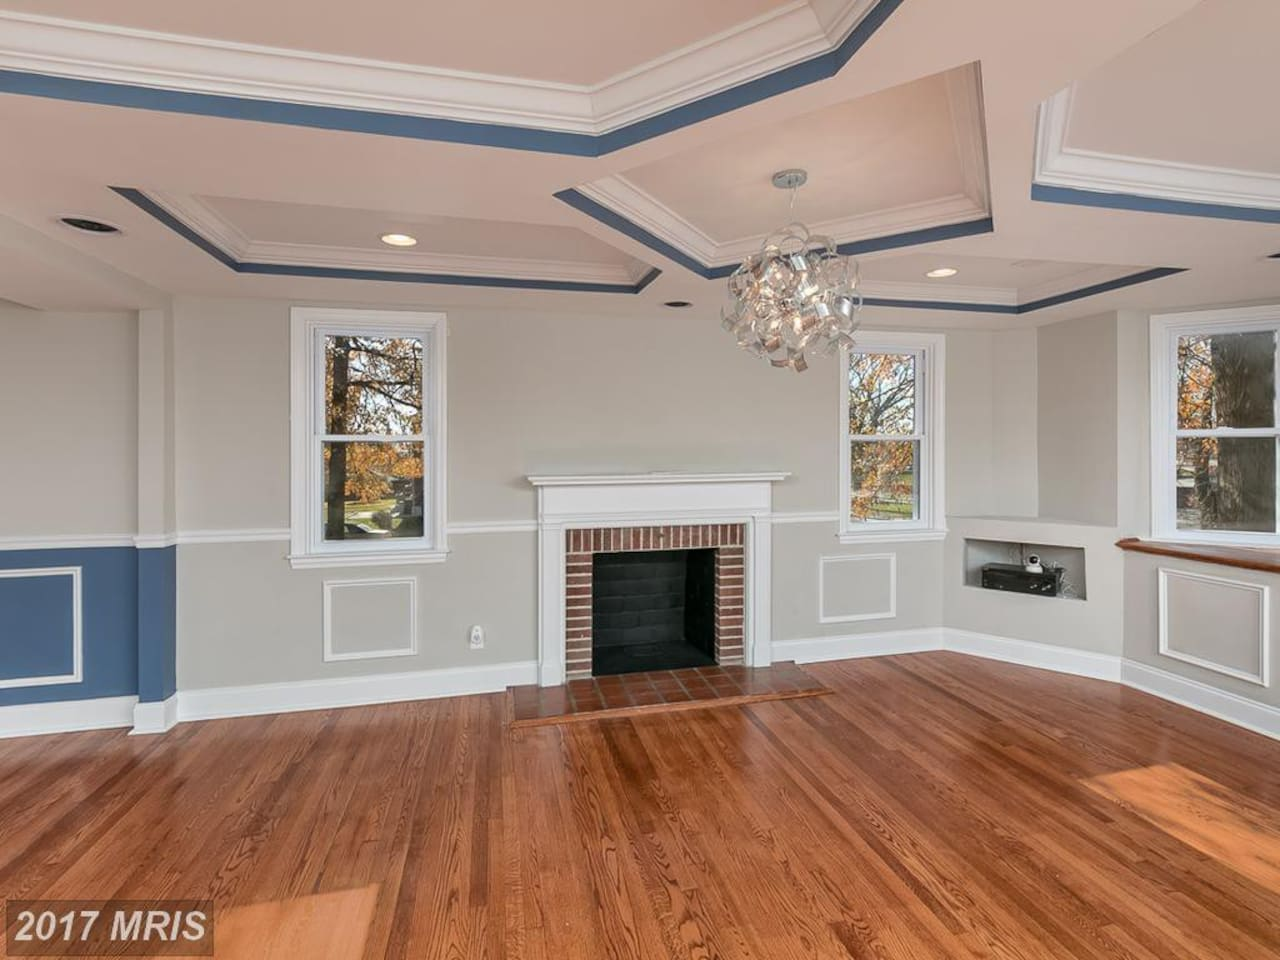 The living room has a fireplace and bay windows